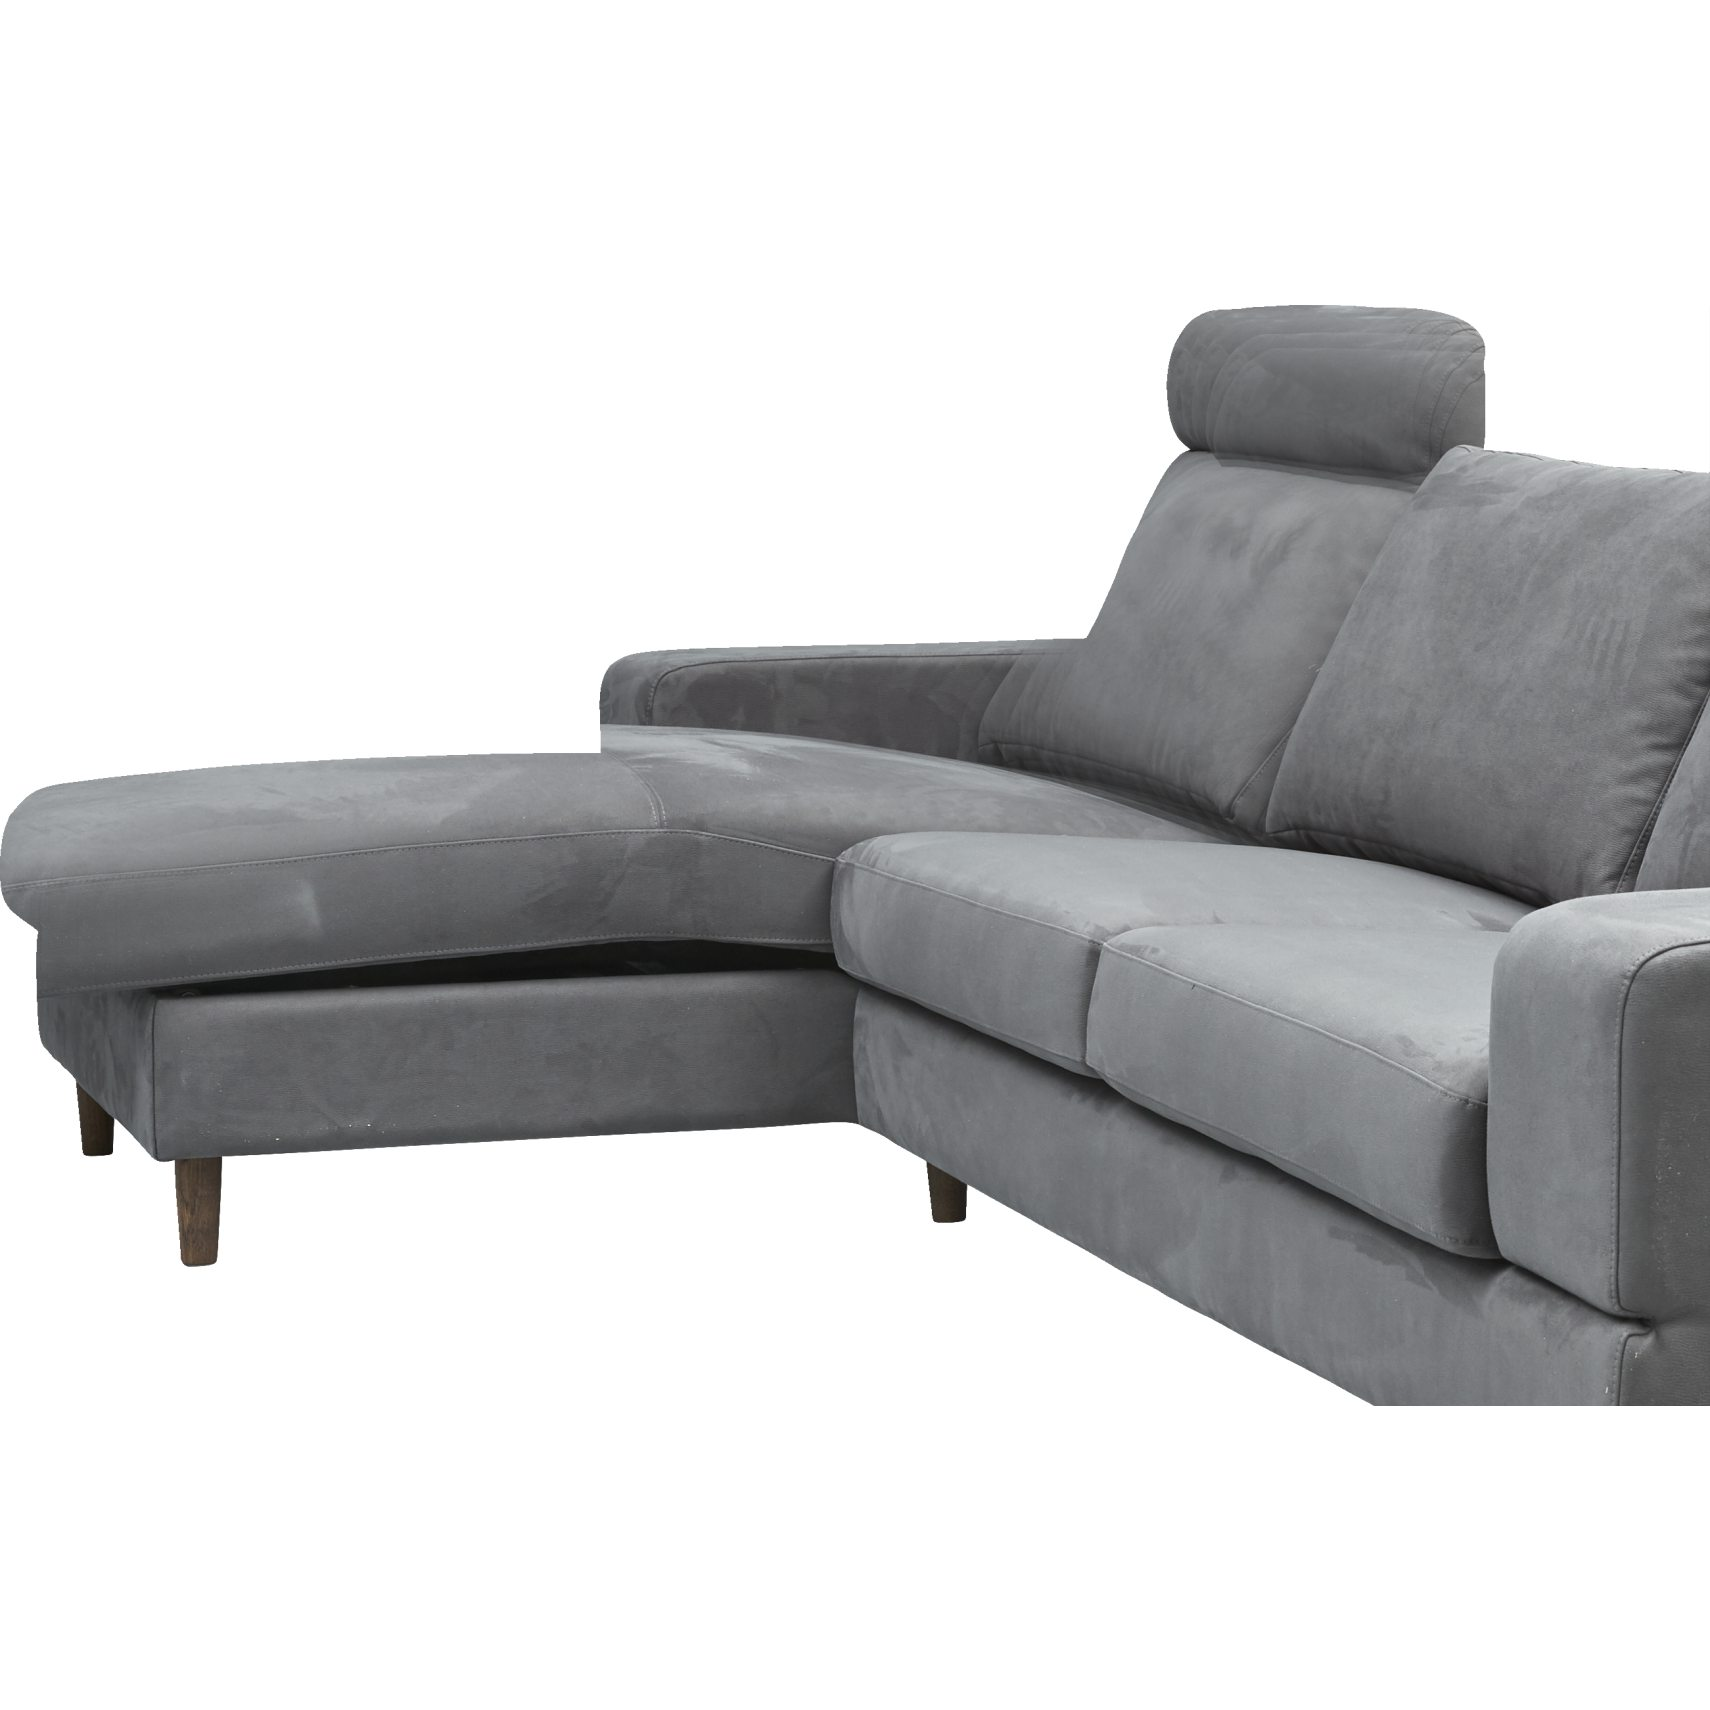 Umbria Lux Sofa med chaiselong